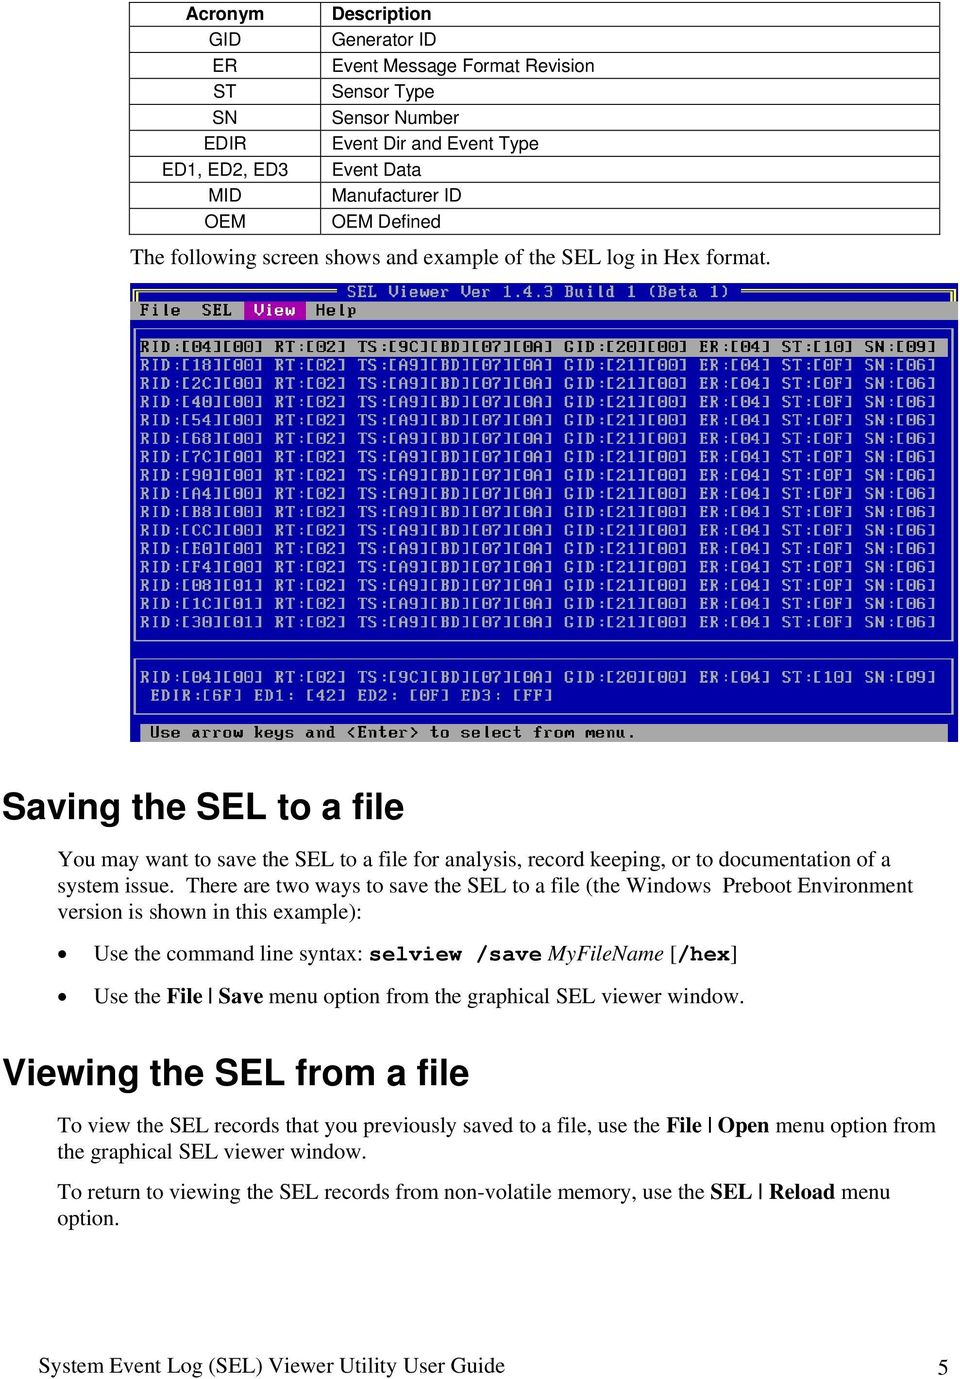 There are two ways to save the SEL to a file (the Windows Preboot Environment version is shown in this example): Use the command line syntax: selview /save MyFileName [/hex] Use the File Save menu